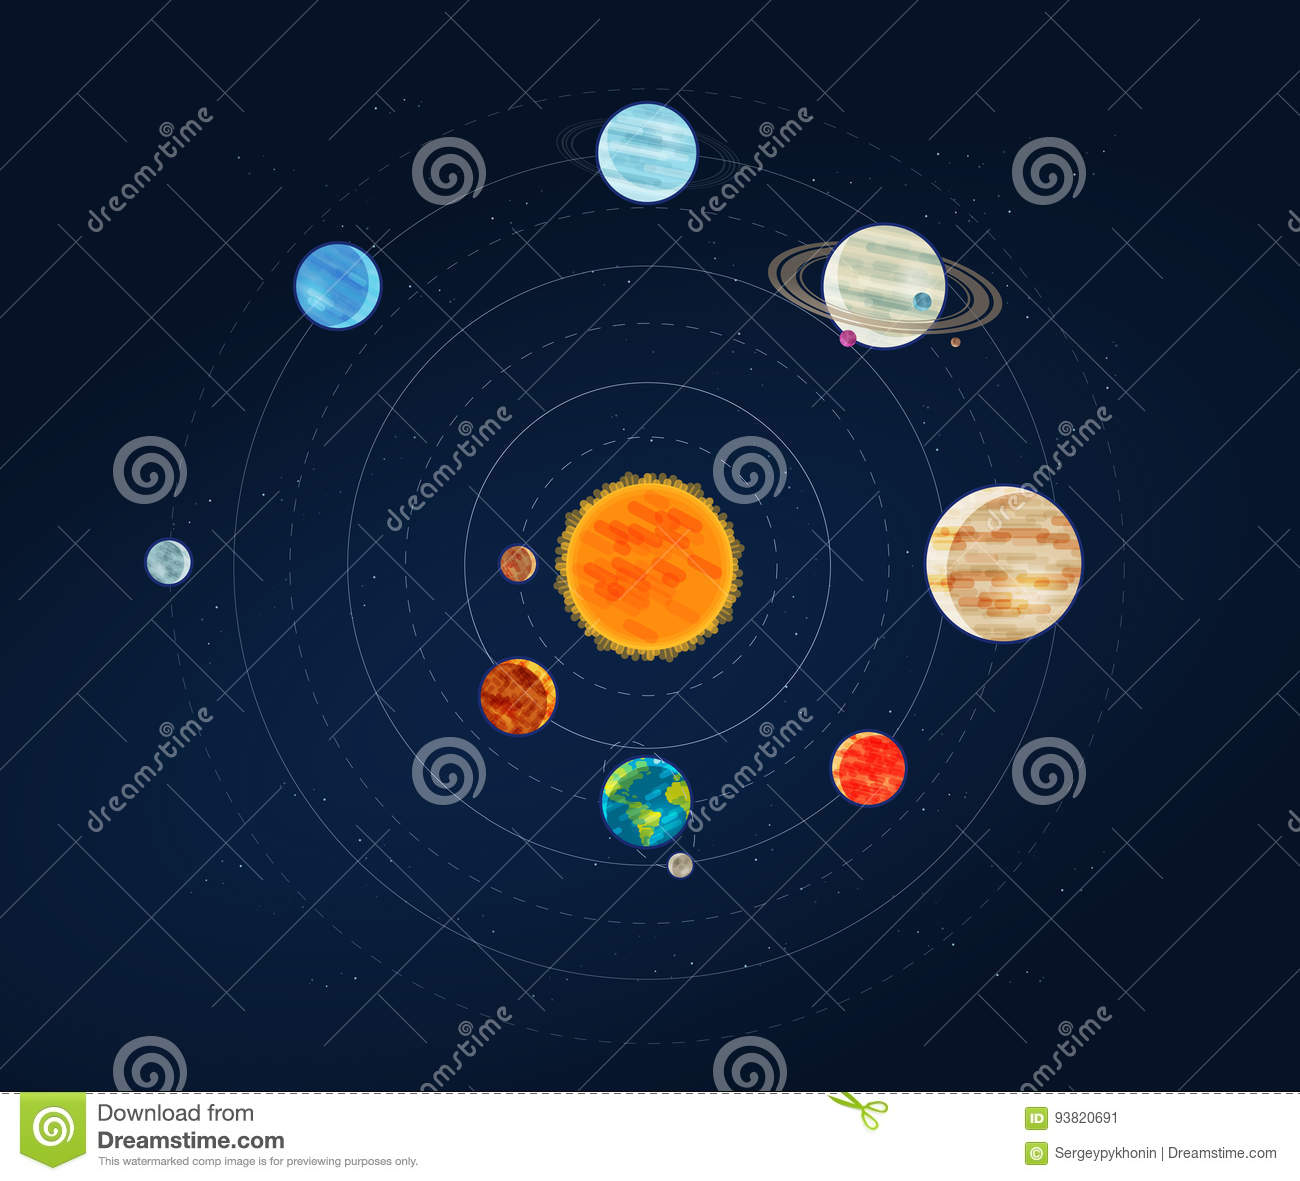 galaxies planets and stars cartoons - photo #1